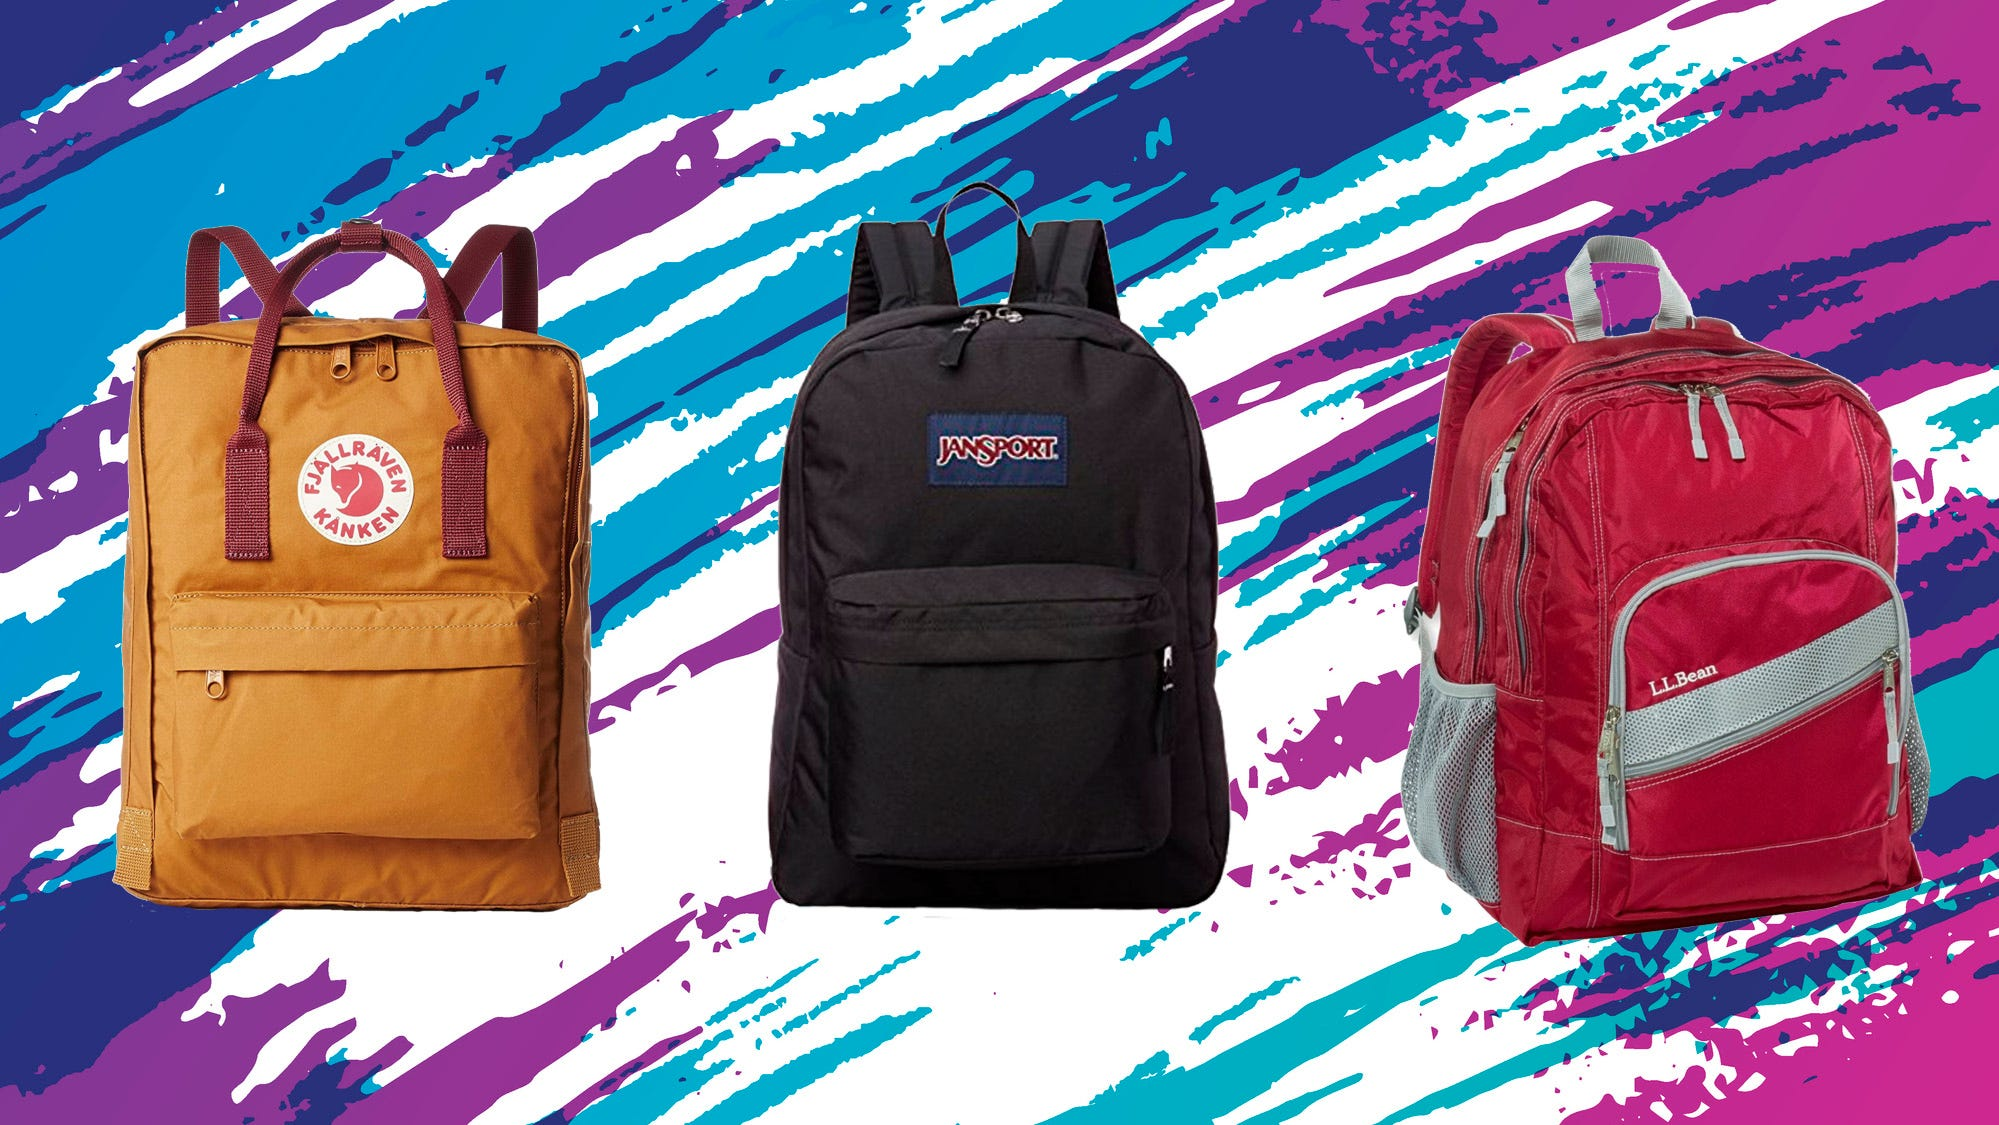 Where to buy backpacks online: JanSport, Nike, North Face and more